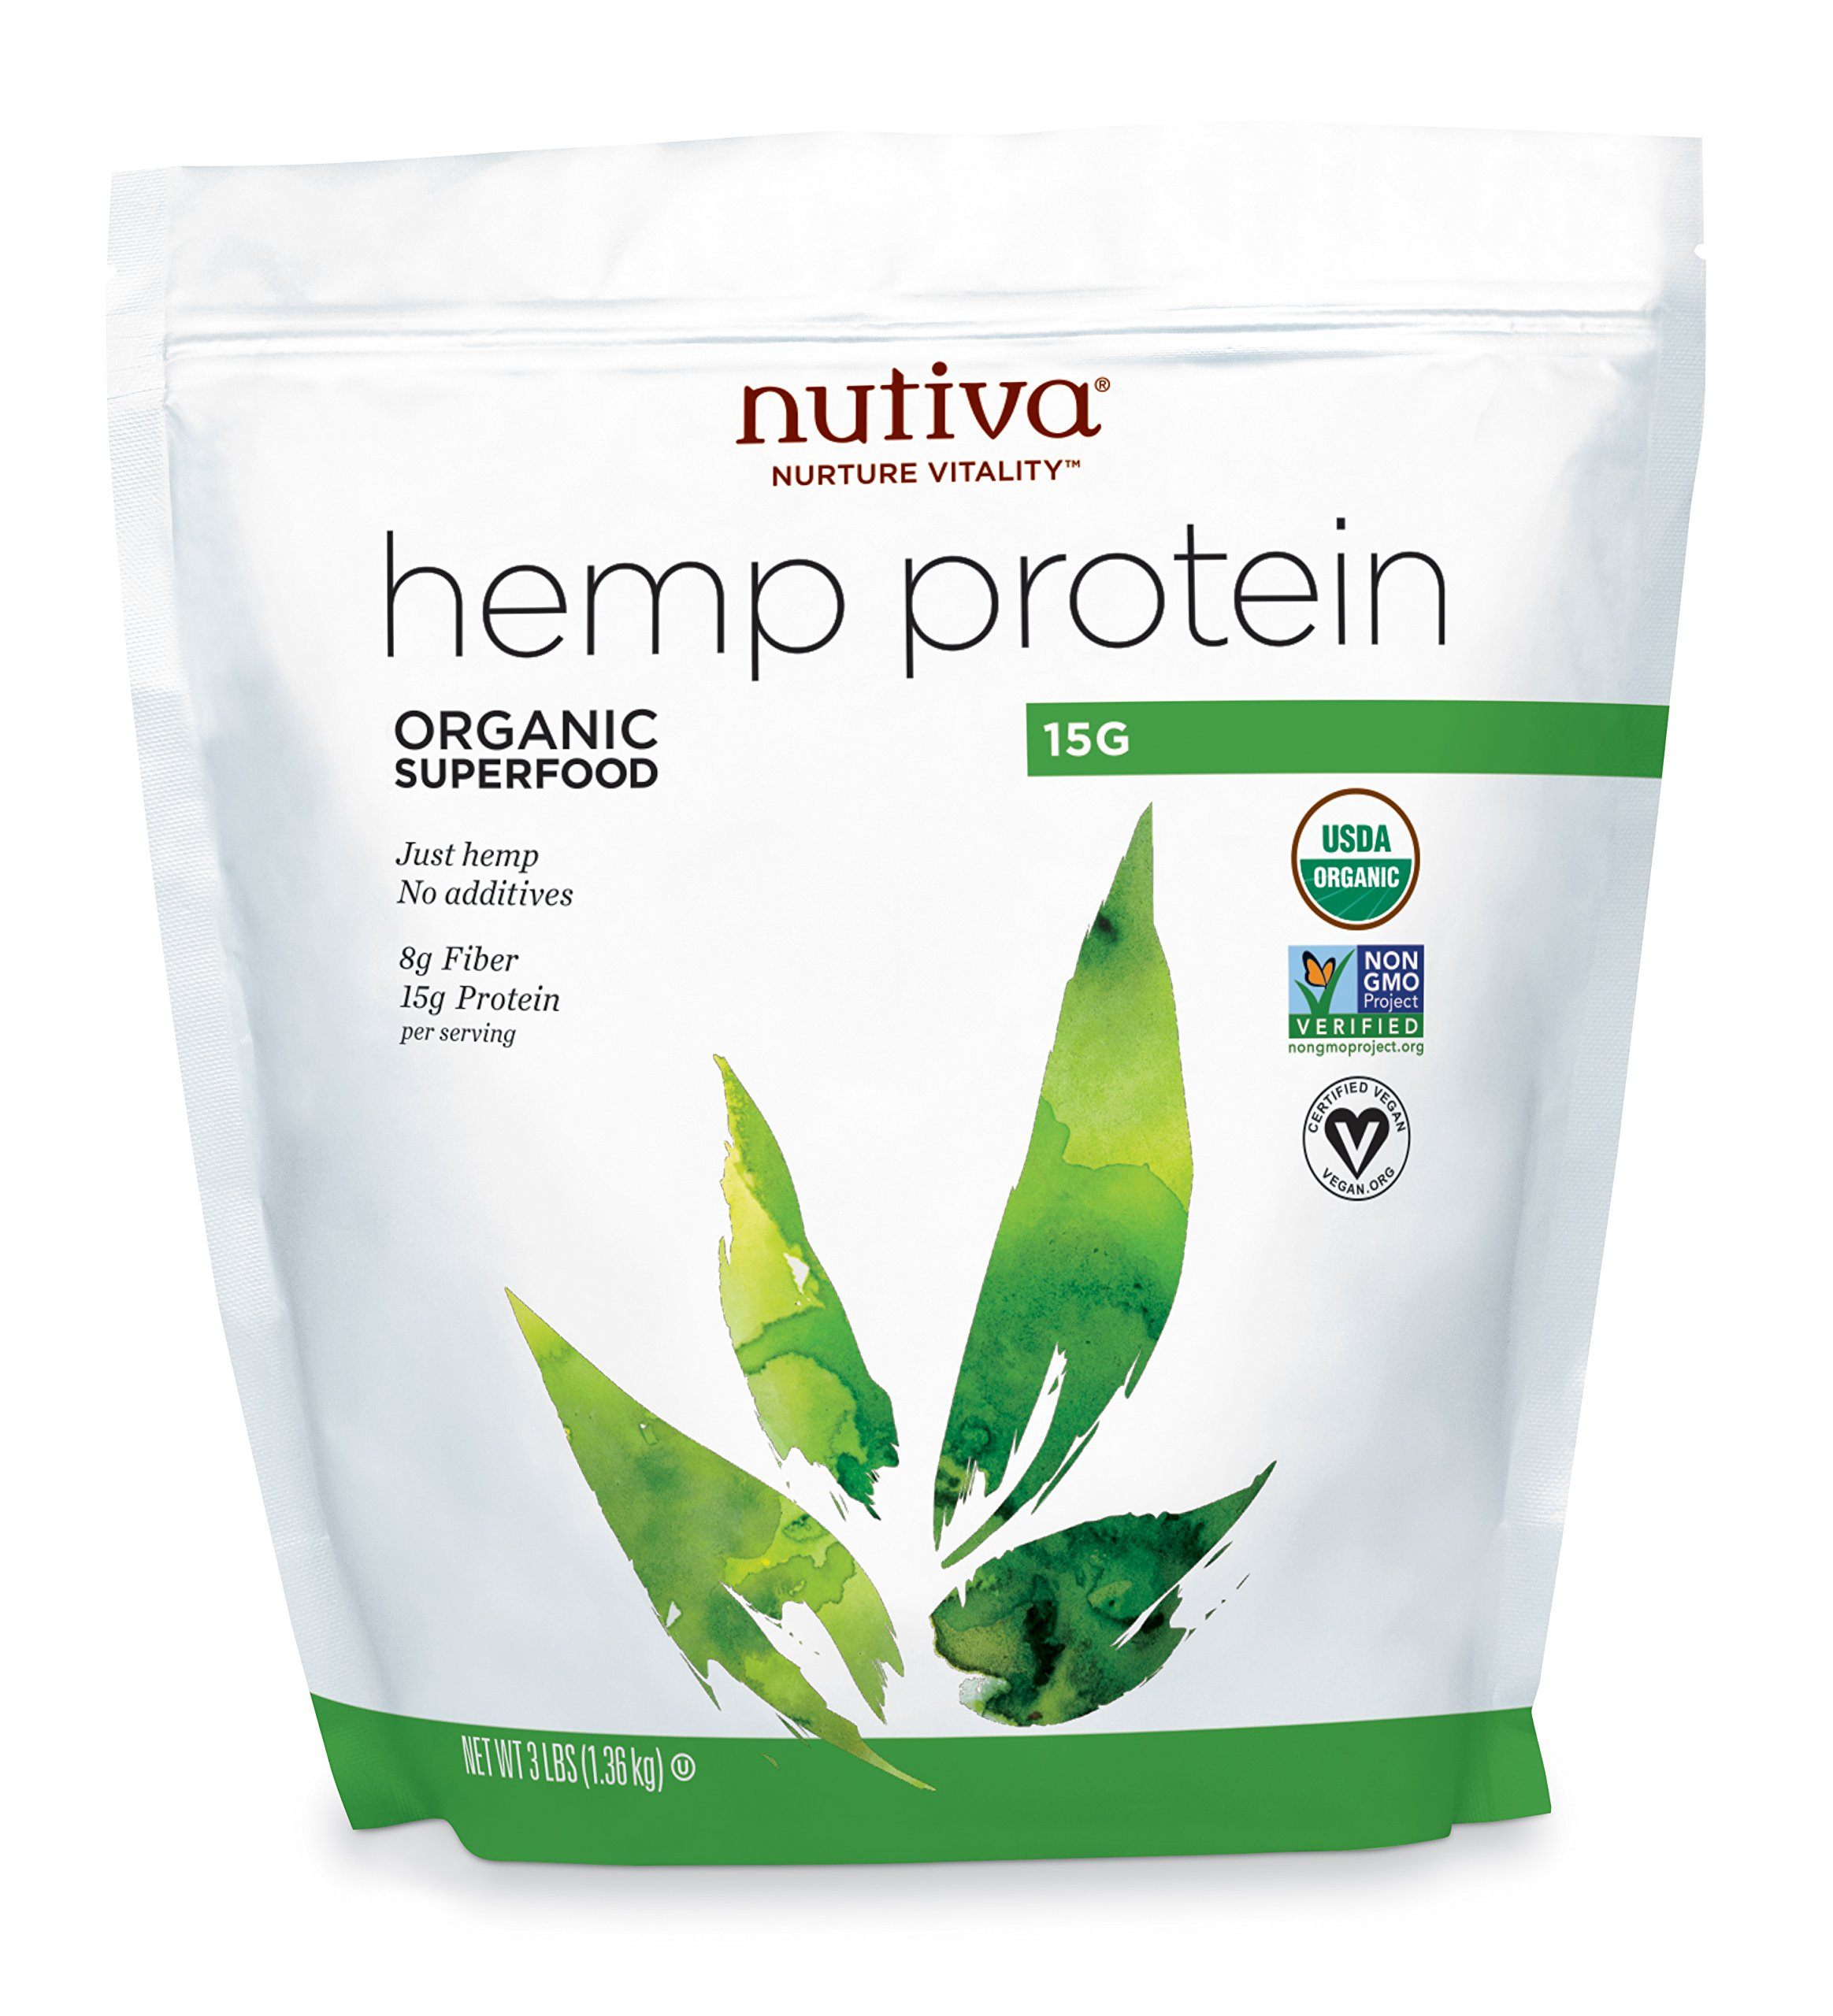 Nutiva Organic, Cold-Processed Hemp Seed Protein from non-GMO, Sustainably Farmed Canadian Hempseed, 15 G, 3-pound